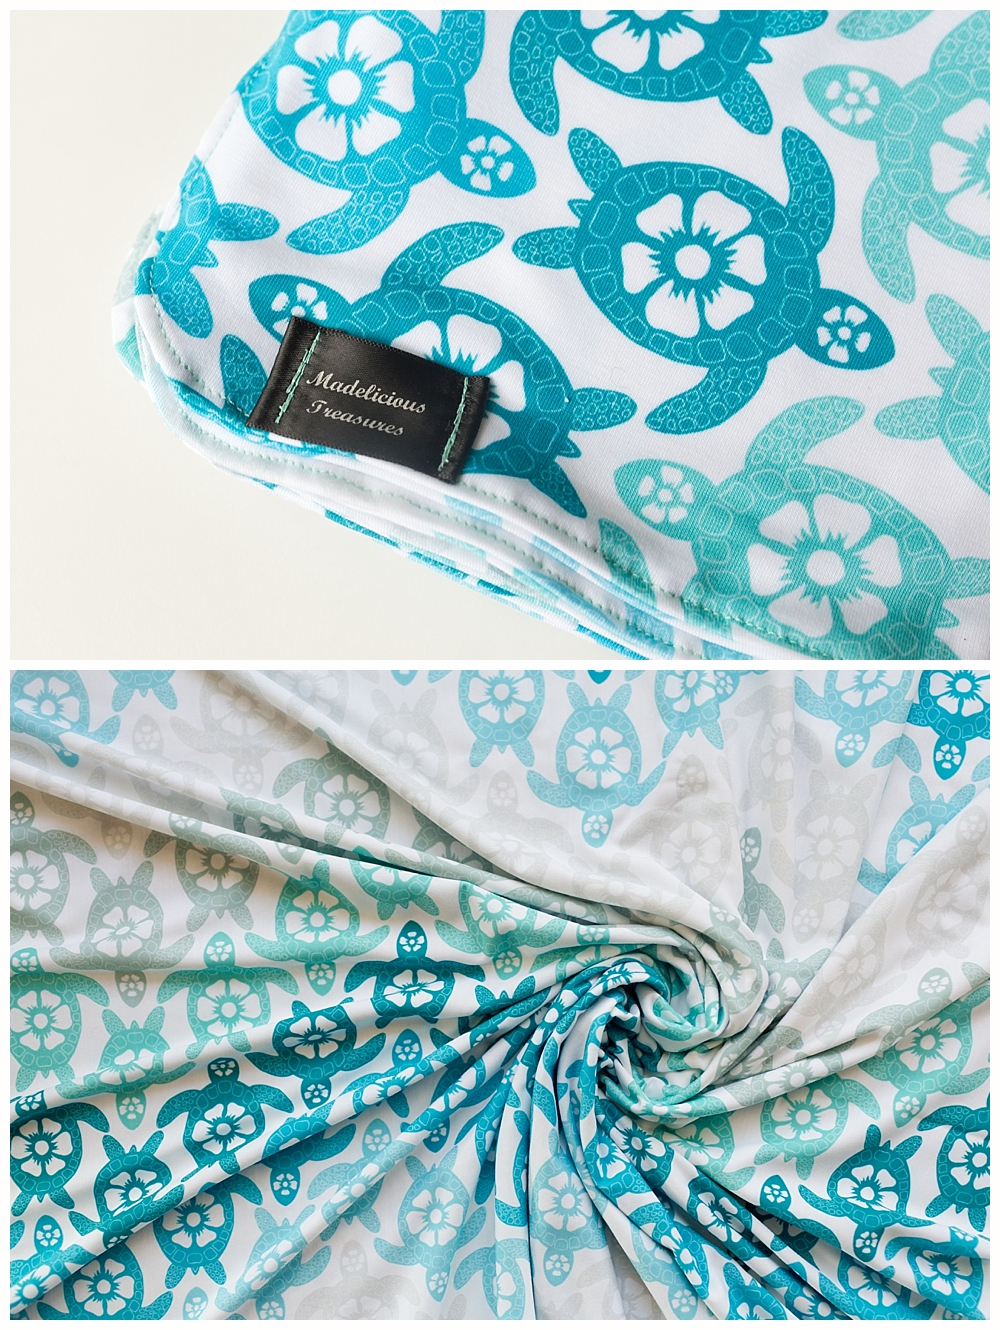 sea turtle baby blanket by Madelicious treasures - product photographer in Ocean Springs, MS